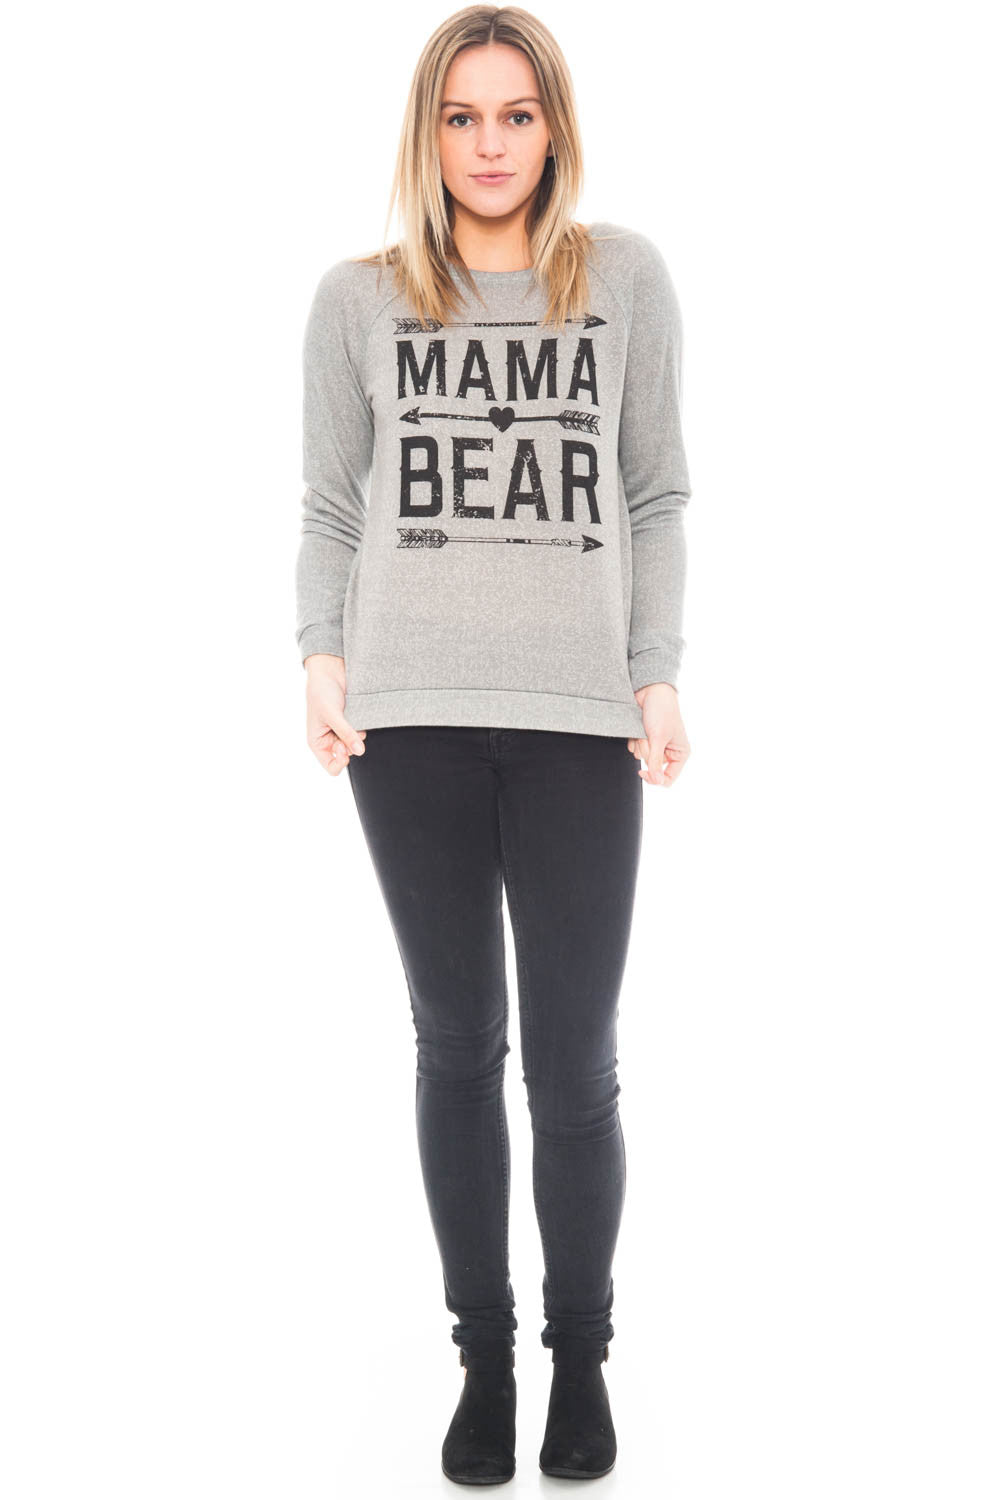 Shirt - Mama Bear Crewneck